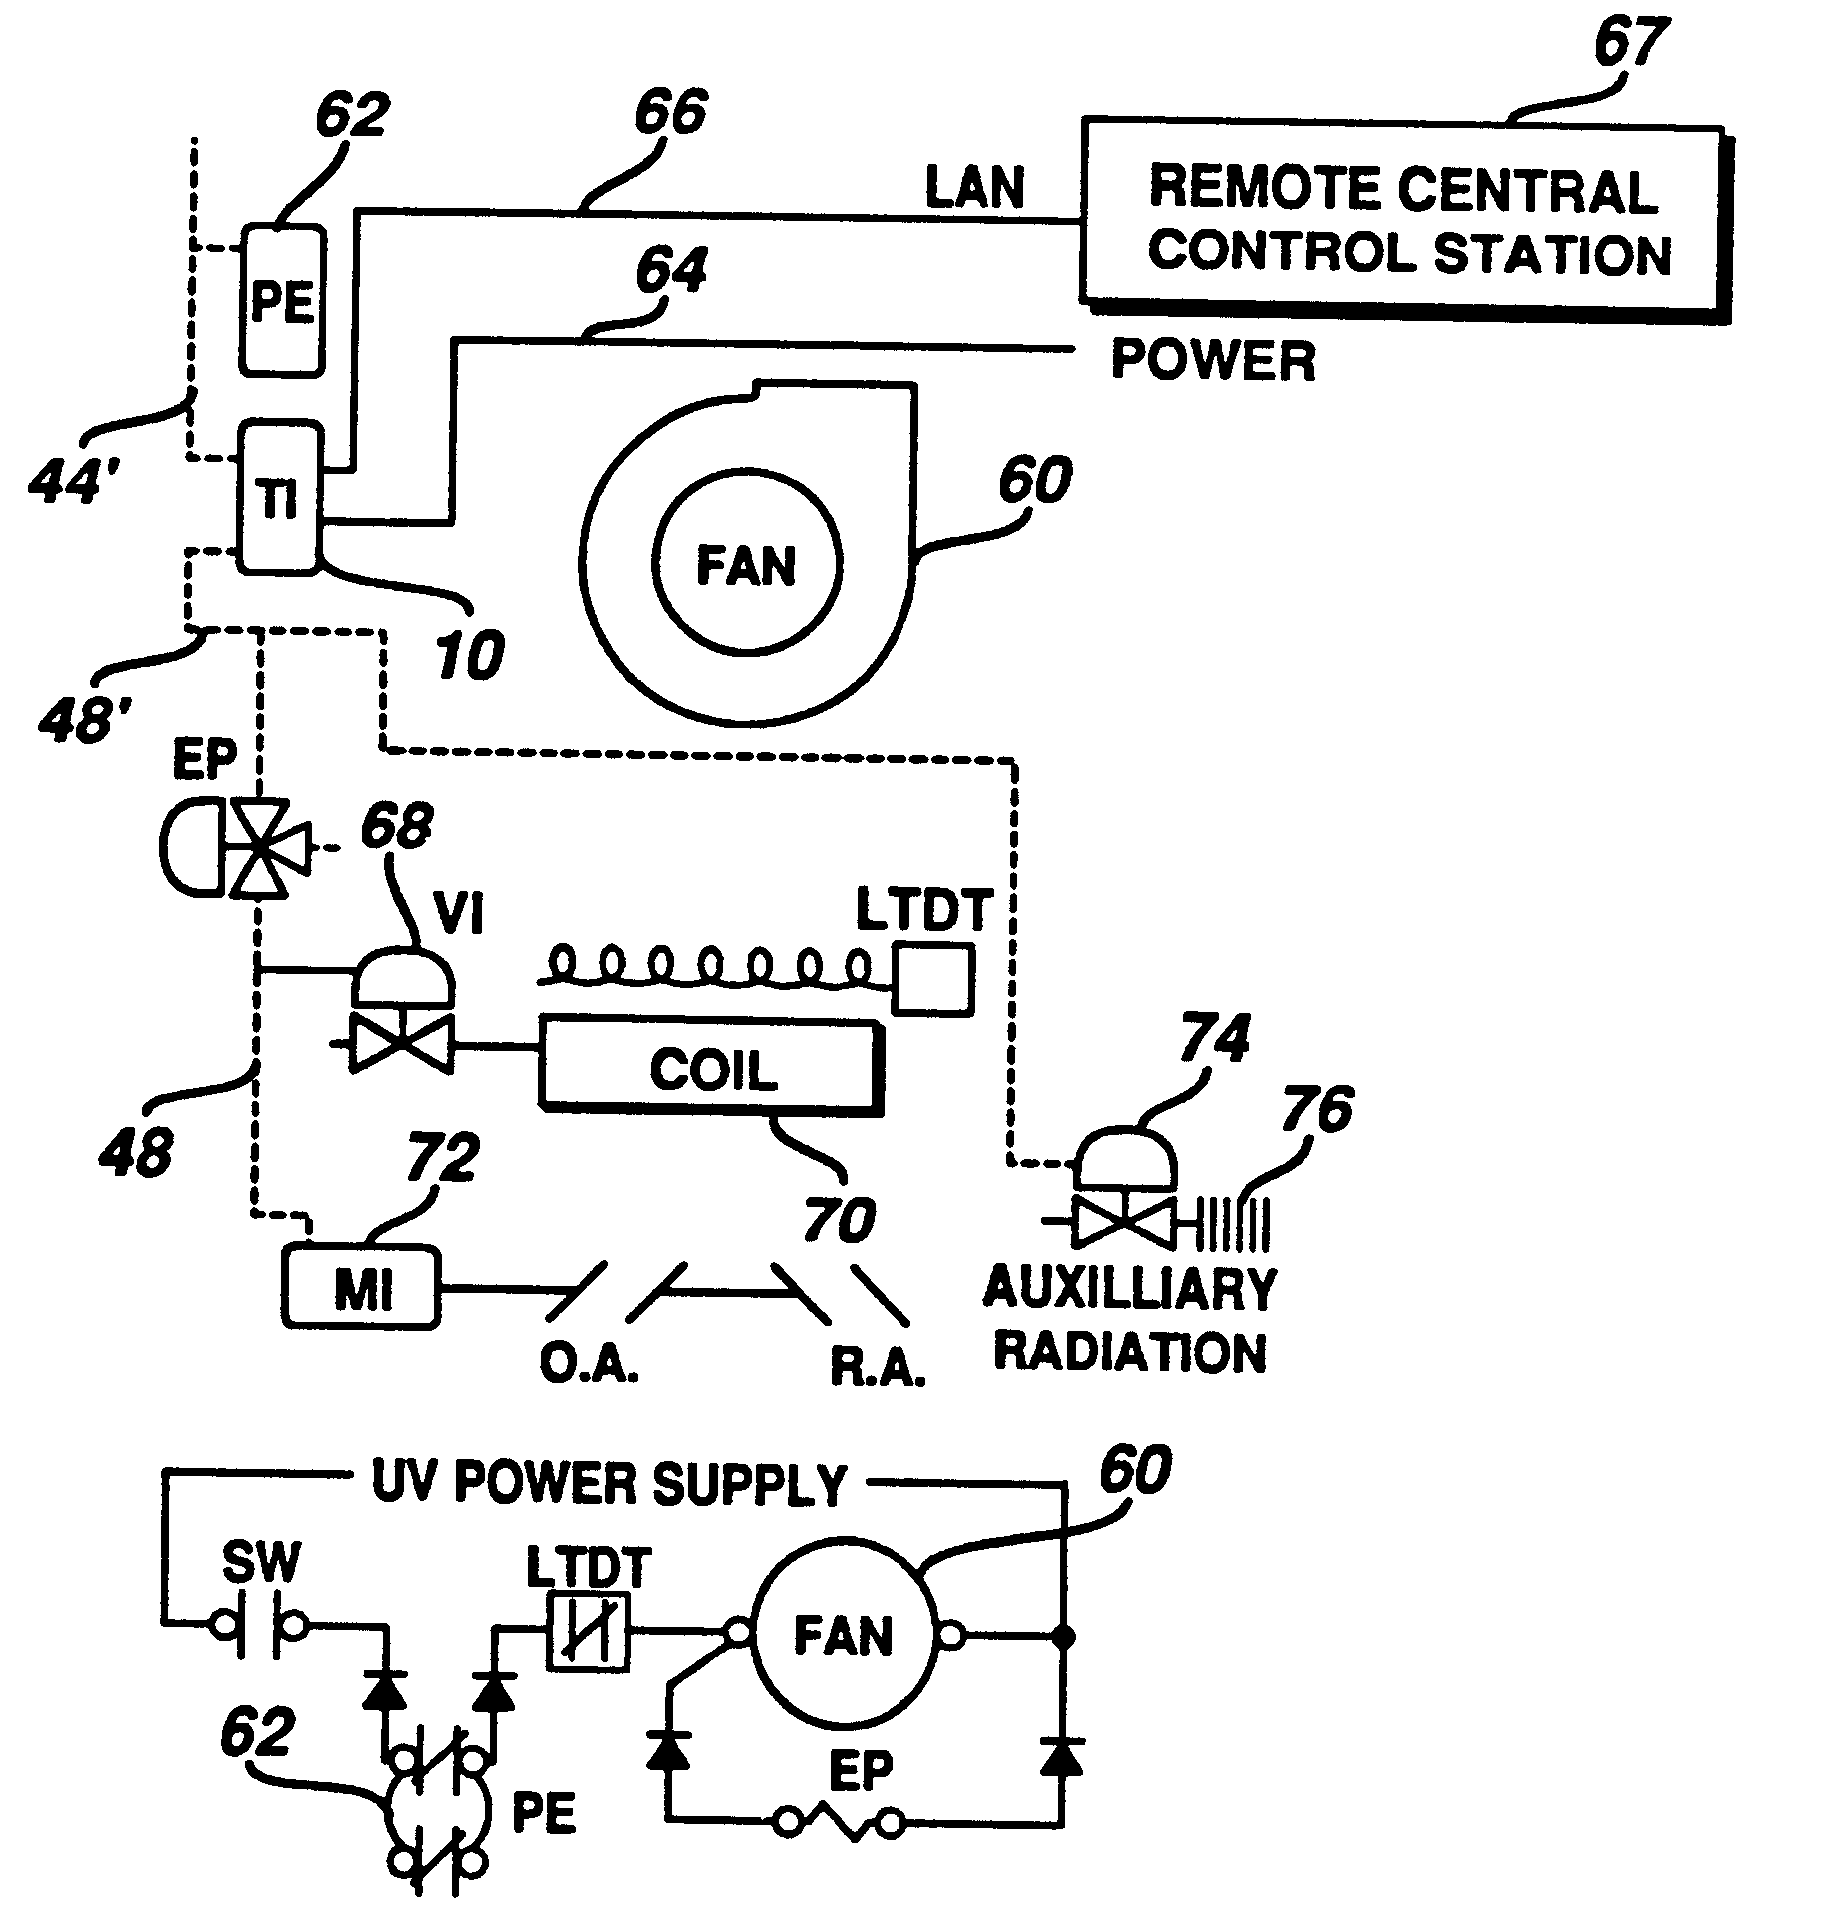 1993 t600 air conditioning thermostat wiring diagram 52 wiring Rheem Heat Pump Not Heating diagrams 454328 heating and cooling thermostat wiring diagram us06264111 20010724 d00000 resize williams furnace